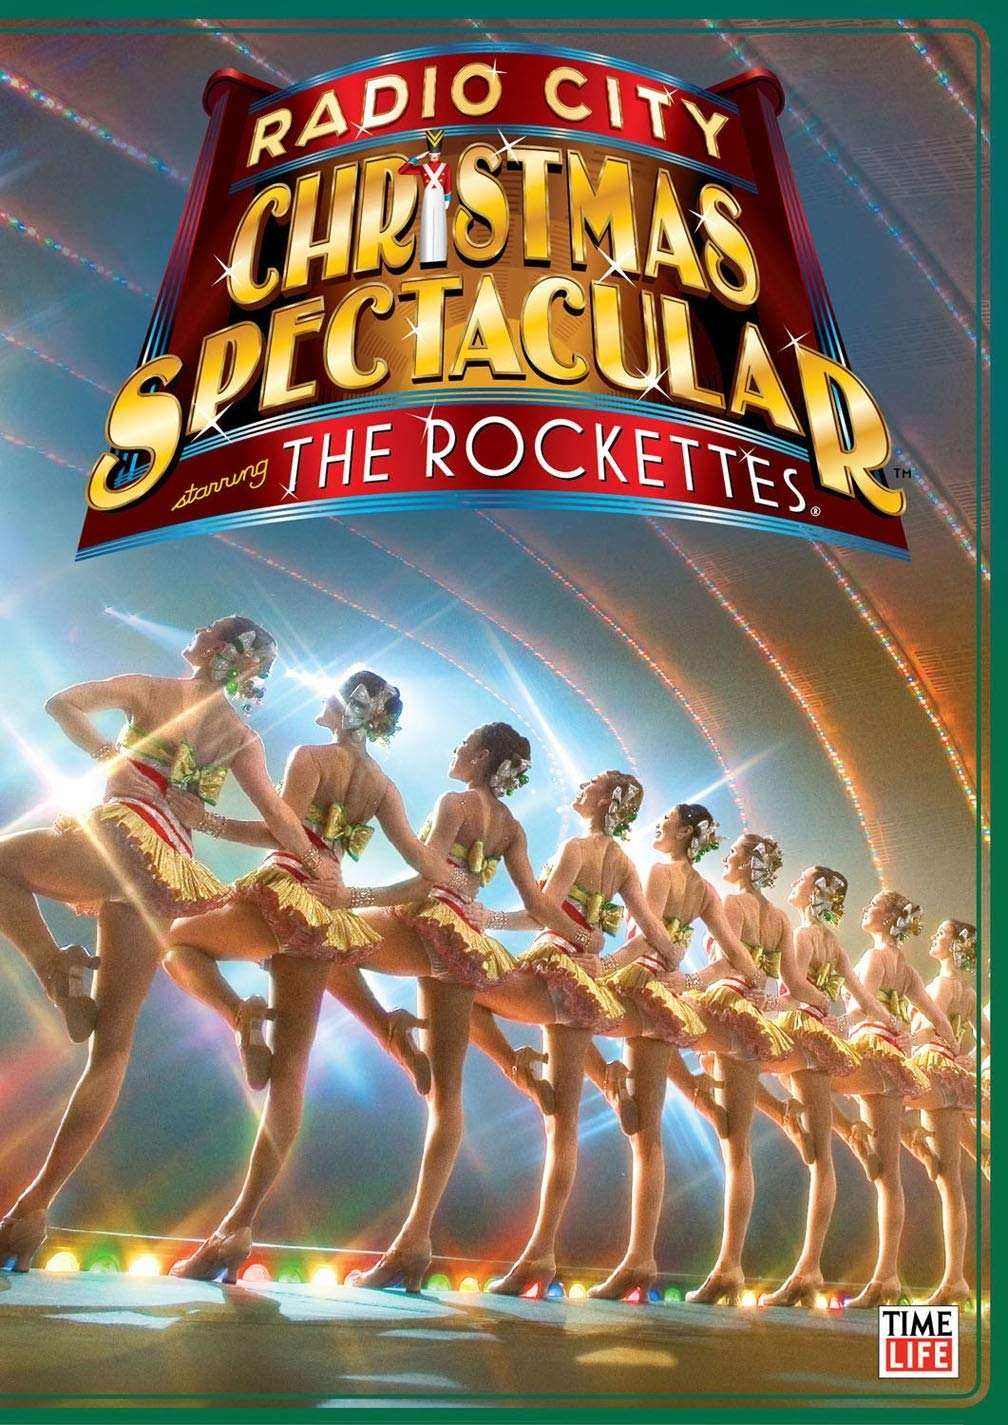 Radio City Christmas Spectacular Tickets.Amazon Com Radio City Christmas Spectacular The Rockettes